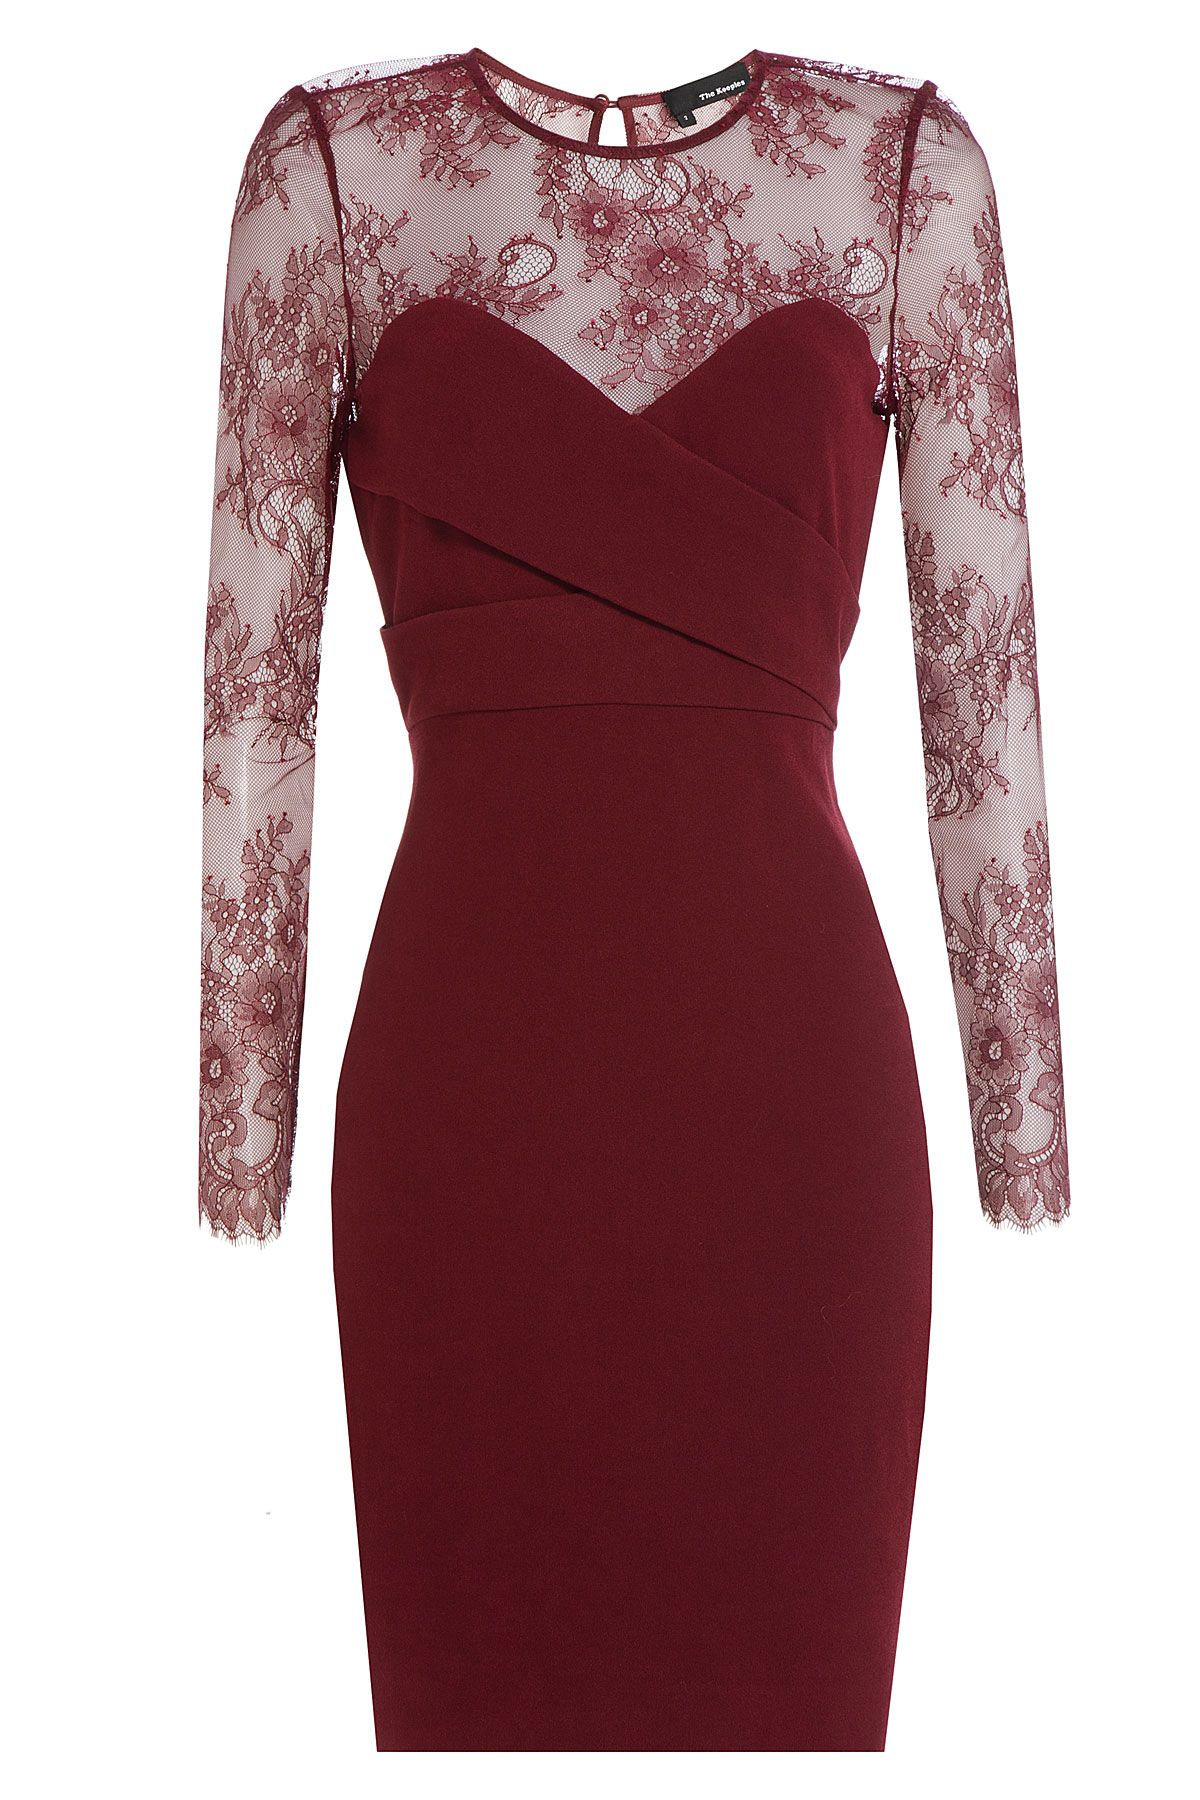 Dresses to wear to a wedding as a guest over 50   Dresses Any Guest Can Wear to a Winter Wedding  Lace The oujays